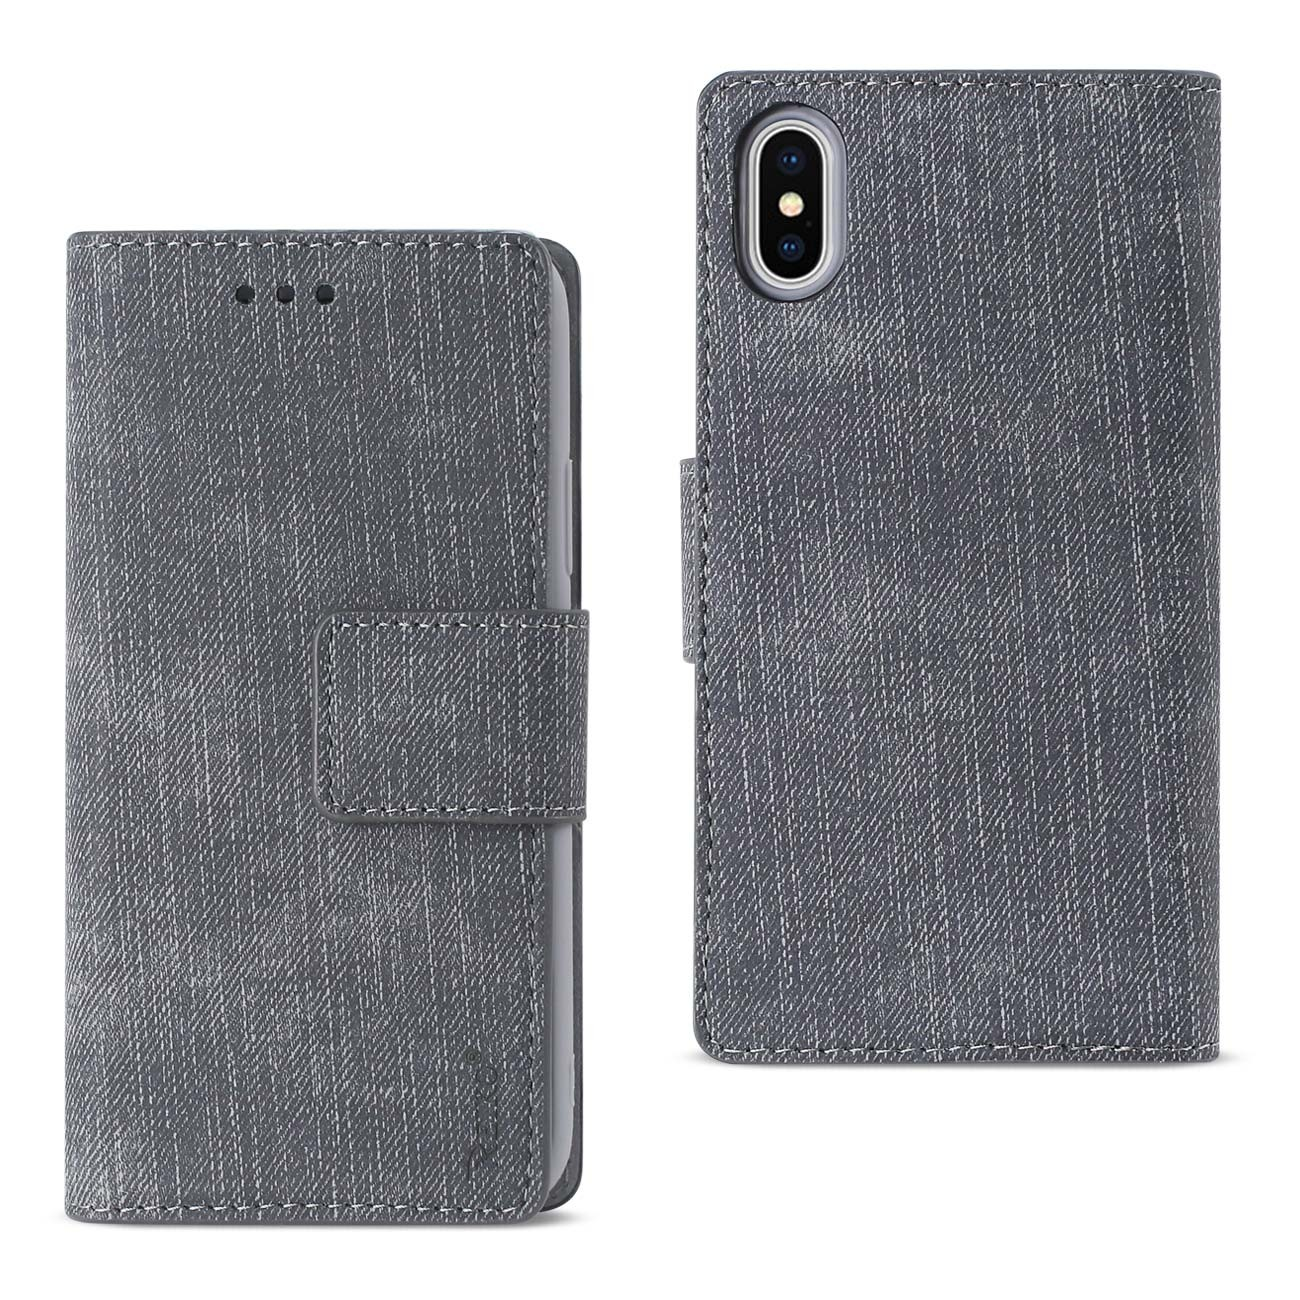 Reiko iPhone X Denim Wallet Case With Gummy Inner Shell And Kickstand Function In Gray